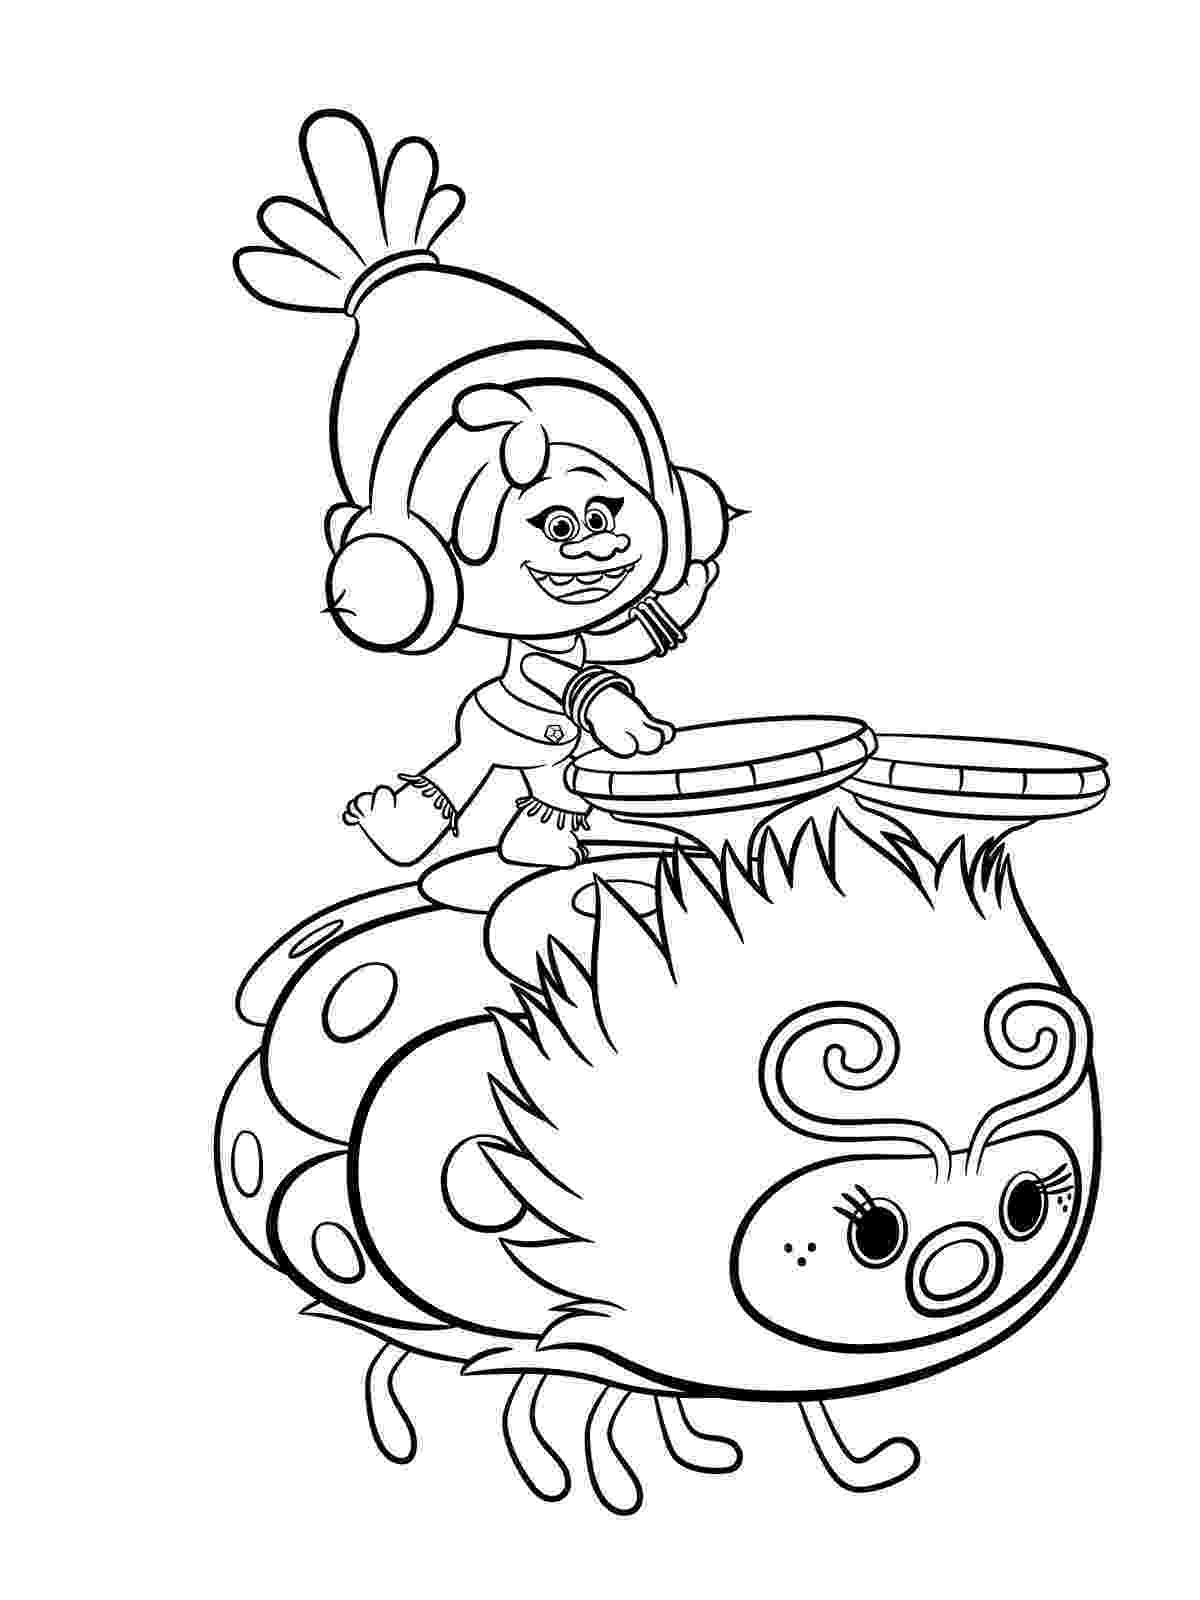 free printable coloring pictures trolls coloring pages to download and print for free pictures free printable coloring